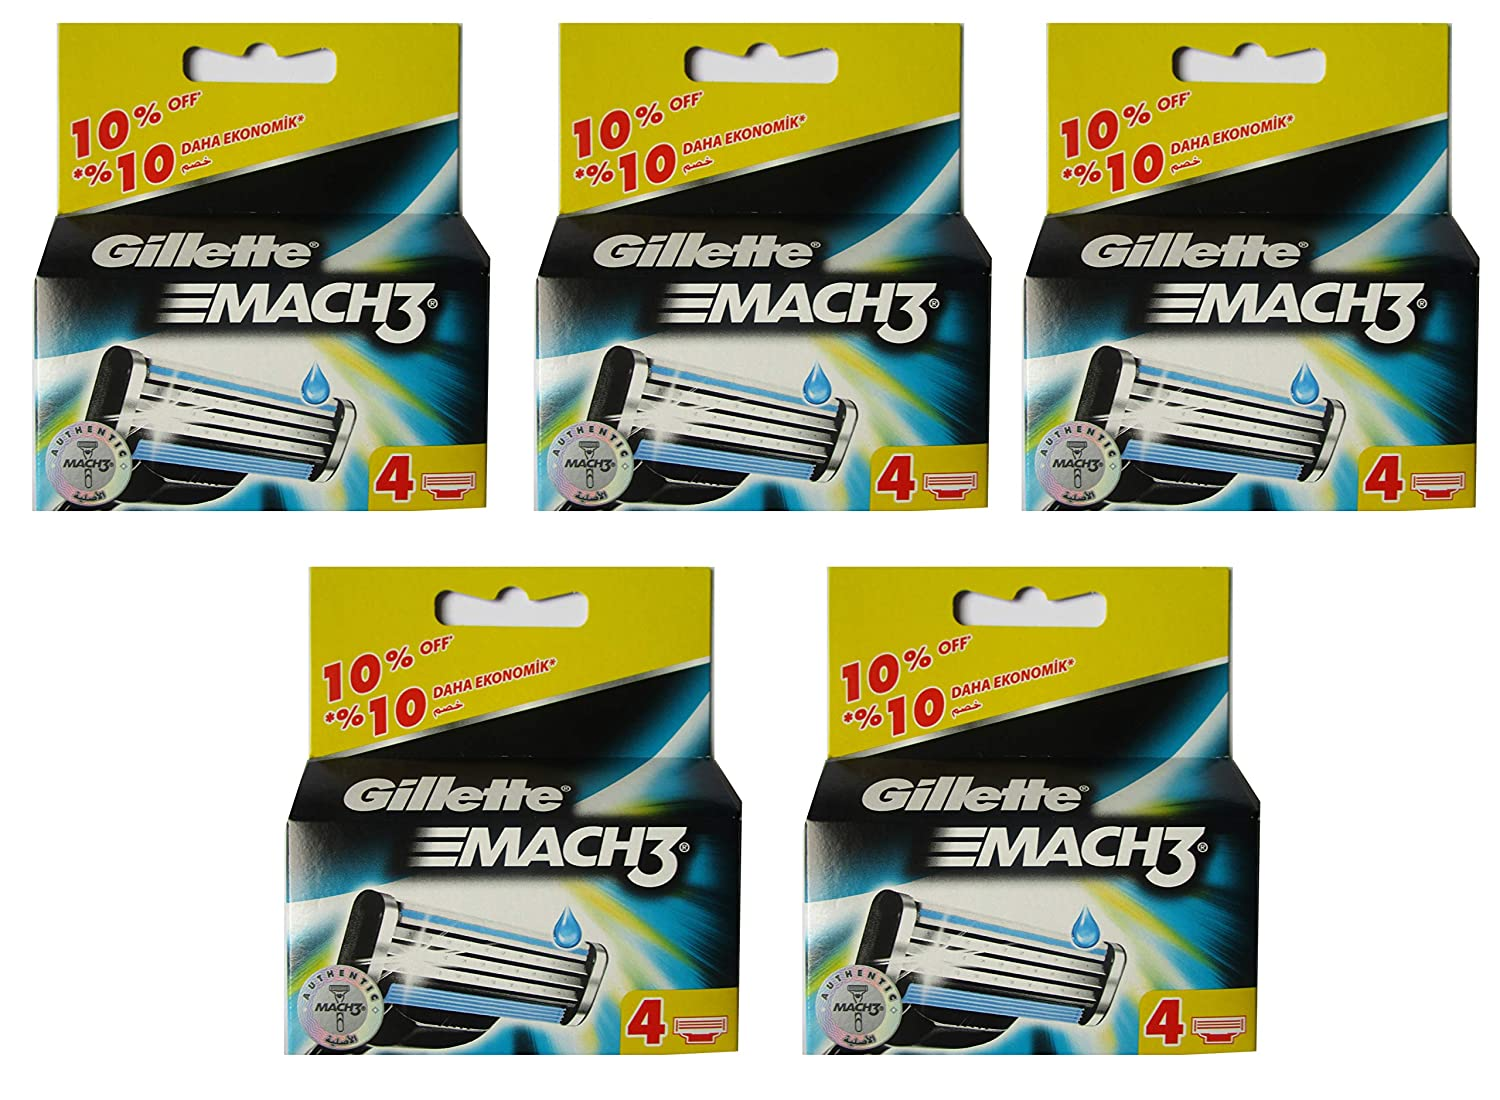 Gilletté Mach 3 Razor Refill Cartridges 20 Count - Free Gift Included (Choose one gift upon purchase) Gillete Mach 3